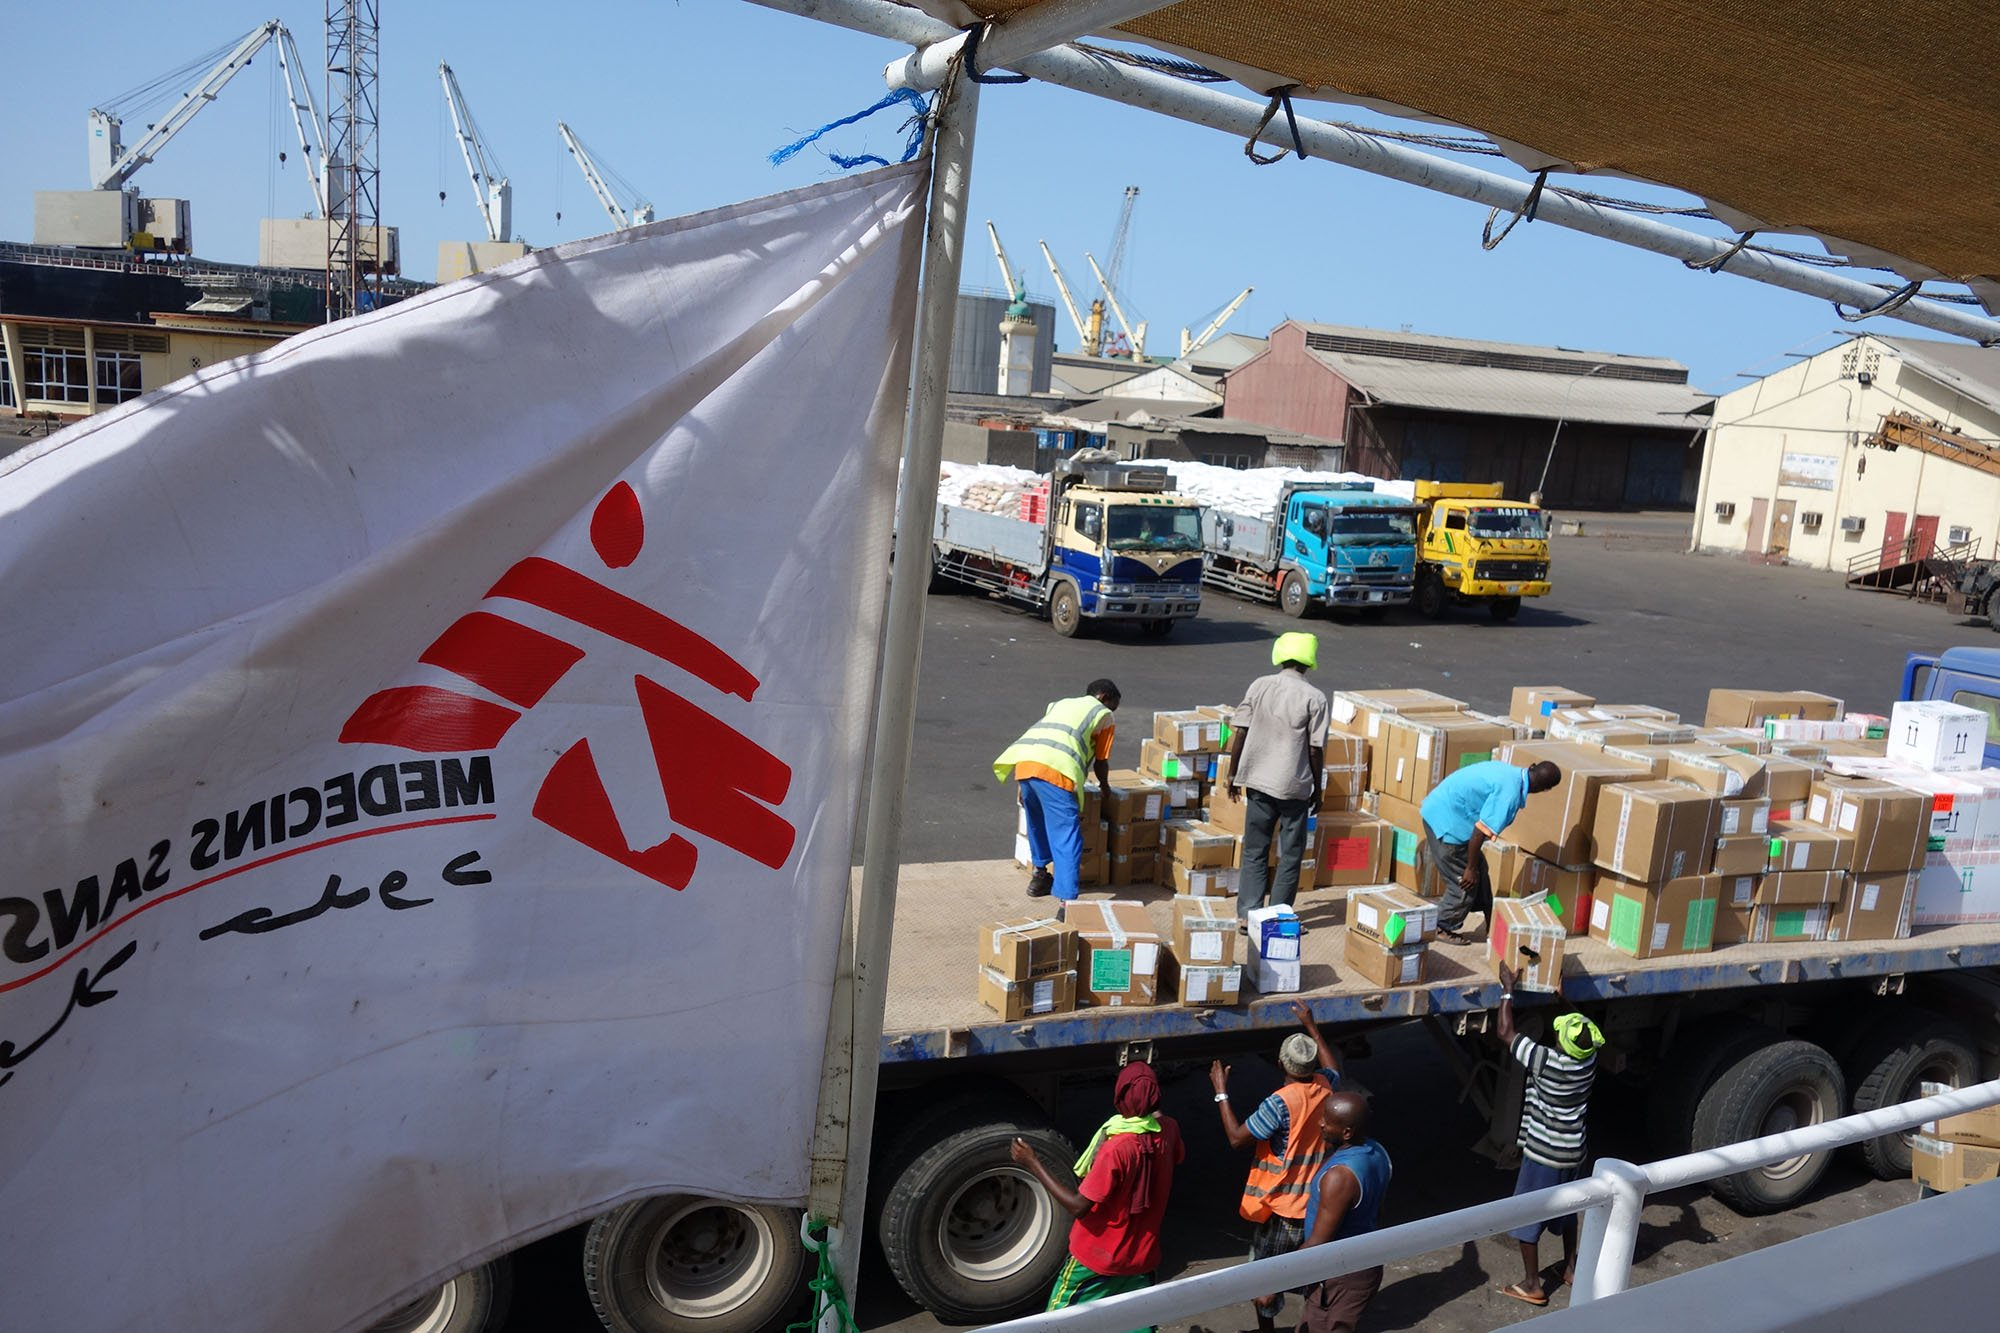 On Wednesday 8th April, one MSF boat successfully made the  crossing from nearby Djibouti to Aden with 1.7 tonnes of supplies to replenish stocks at the MSF Emergency Surgical Unit in Aden.